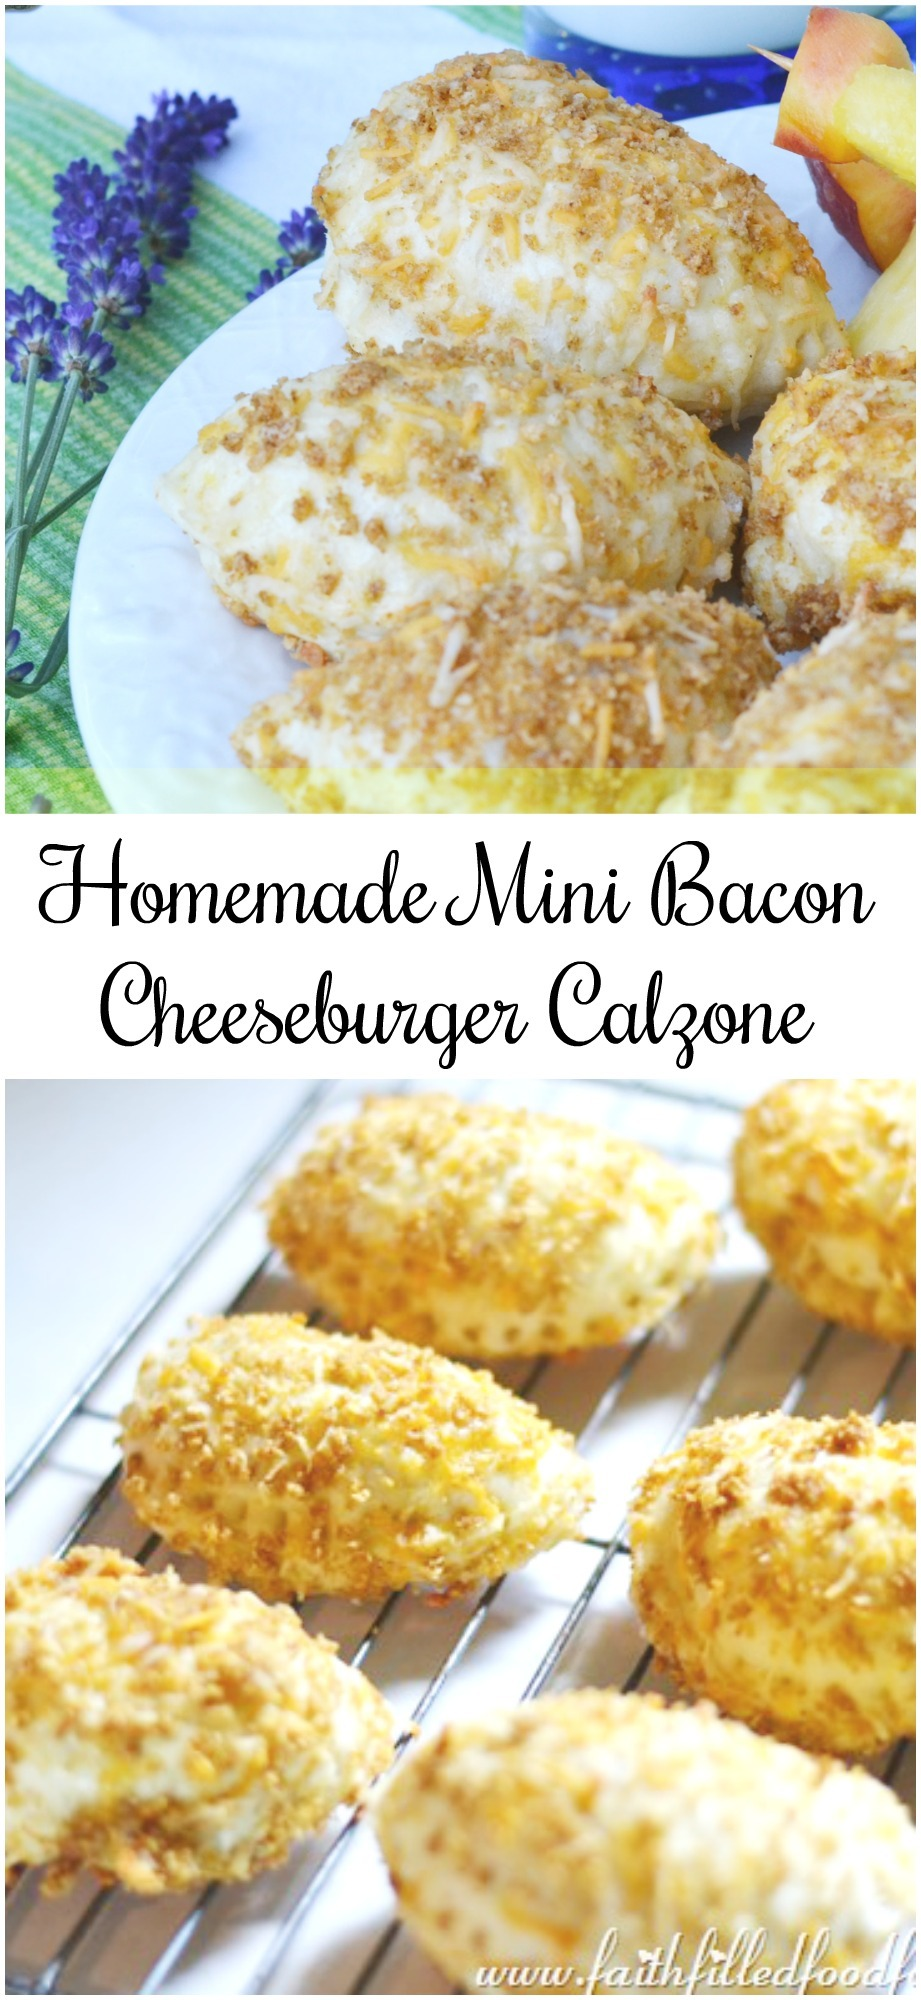 Homemade Mini Bacon Cheeseburger Calzone Hot Pocket Recipe! So easy to make with yummy insides and a crispy outside. Makes great freezer meals, they are more healthy too! #Homemade #freezermeals #makeahead #snacks #homemadebread